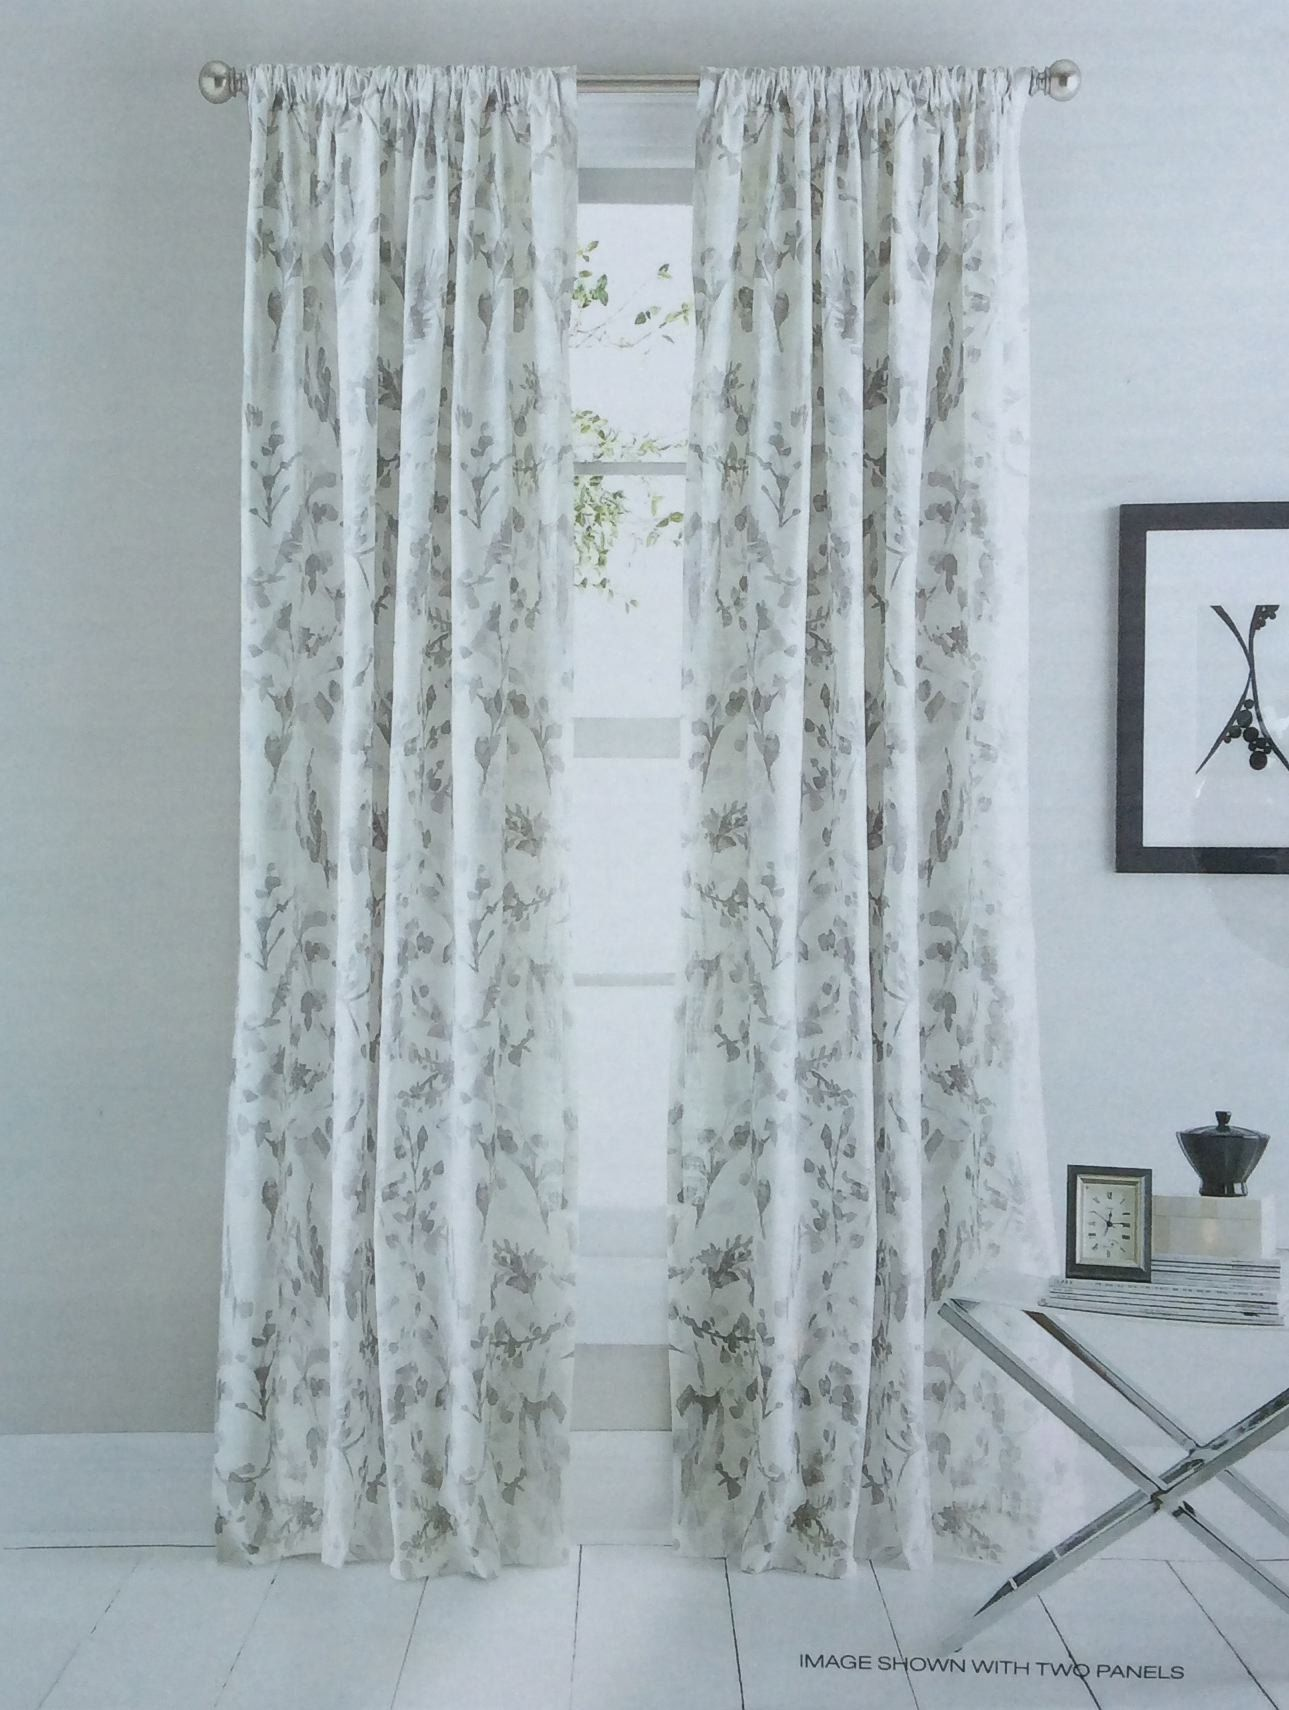 botanical watercolor pocket road ash panels white branches grey painted curtains pin of floral set window by inch gray flowers cotton dkny